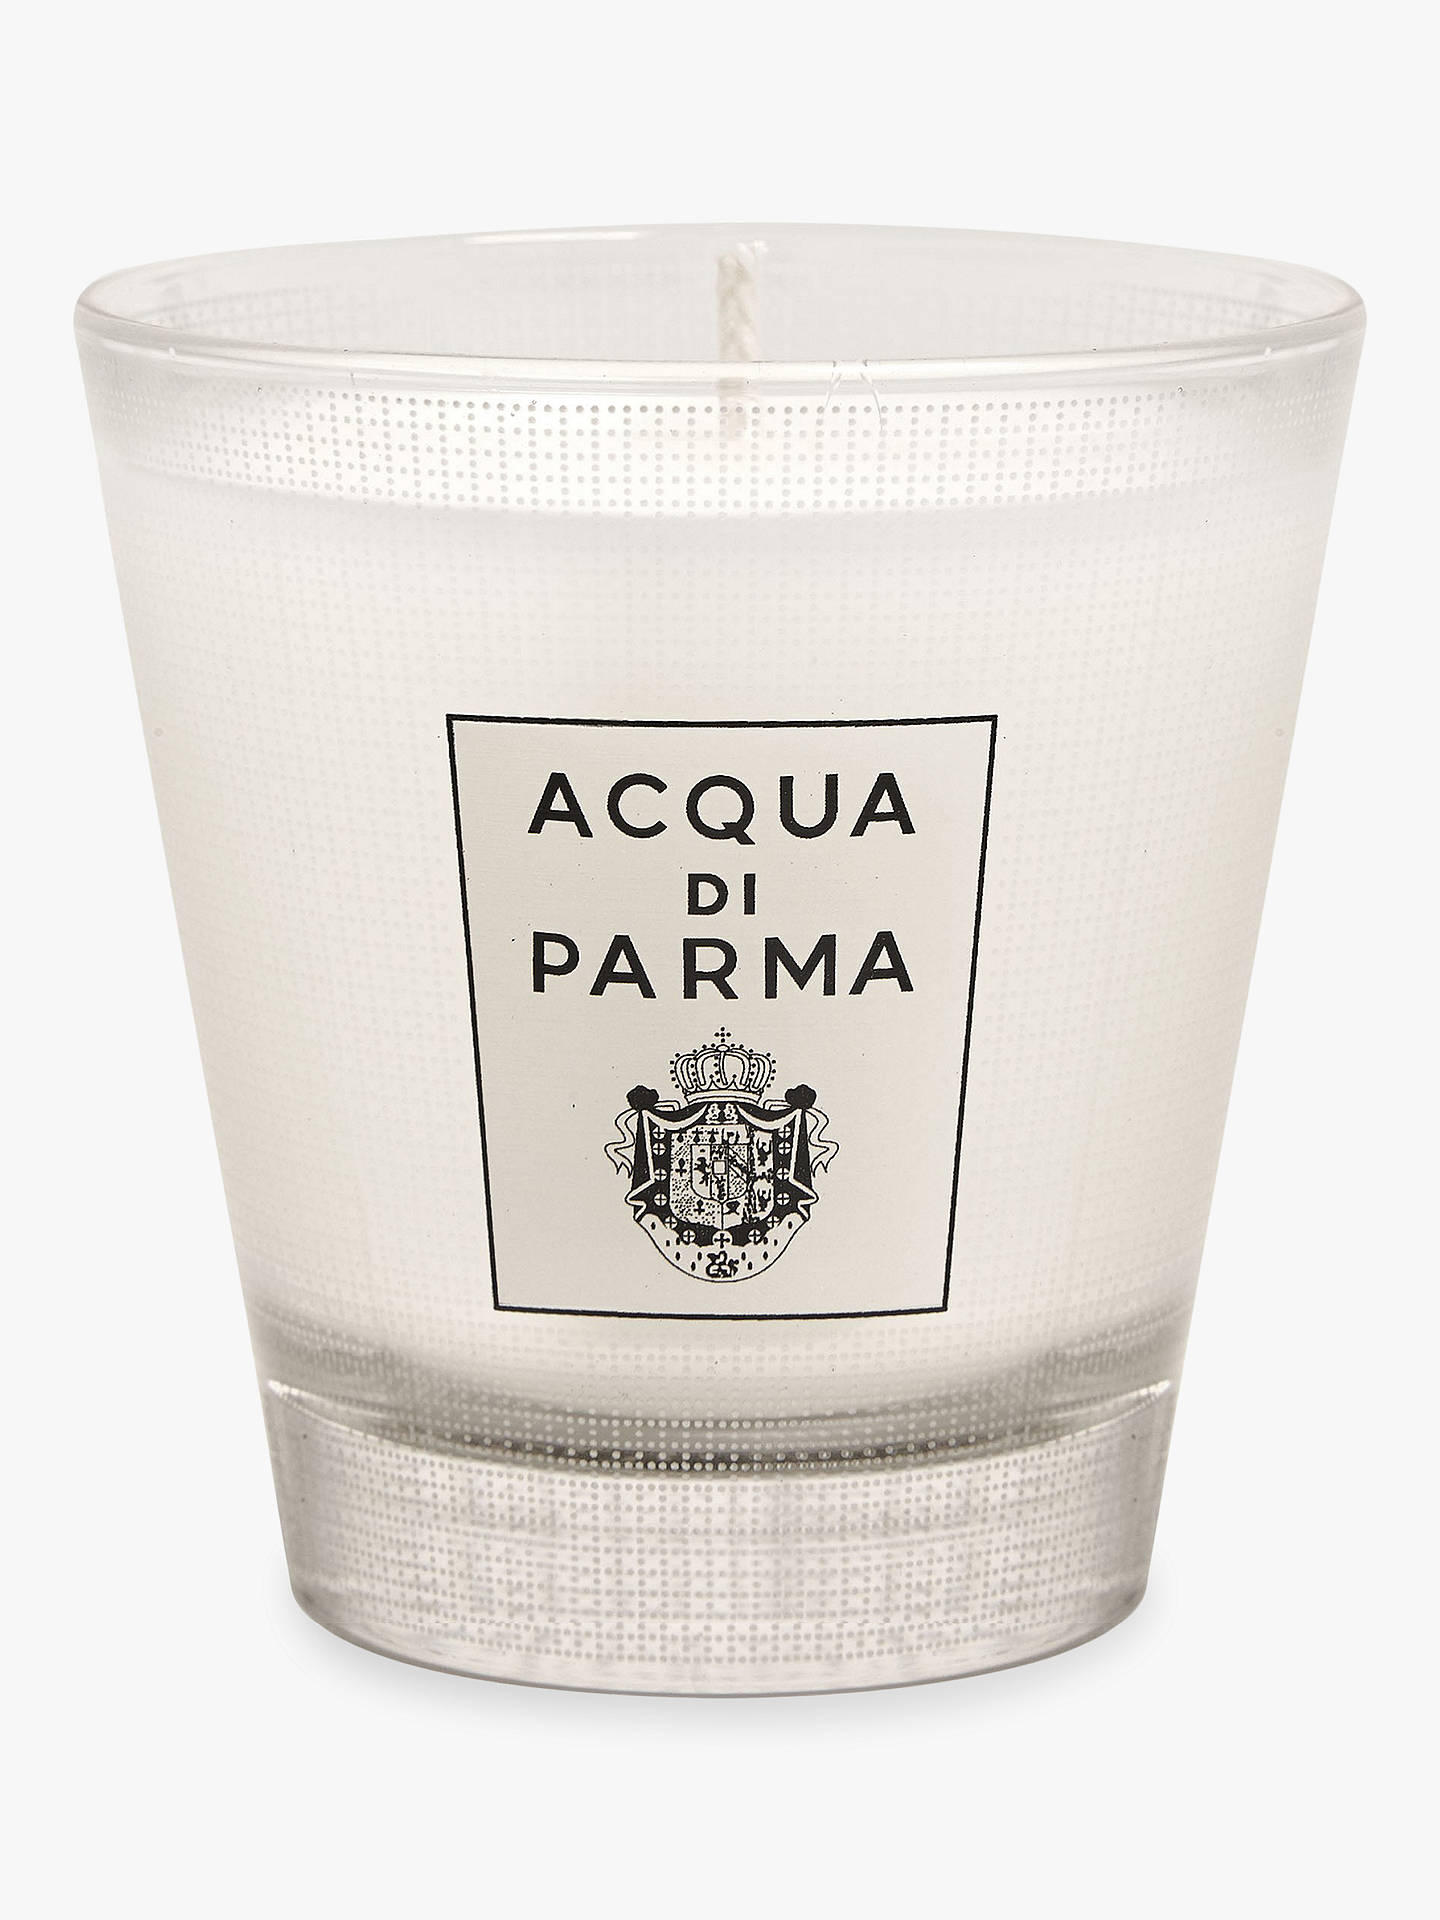 37a87c8034e3 Buy Acqua di Parma Colonia Scented Candle Online at johnlewis.com ...